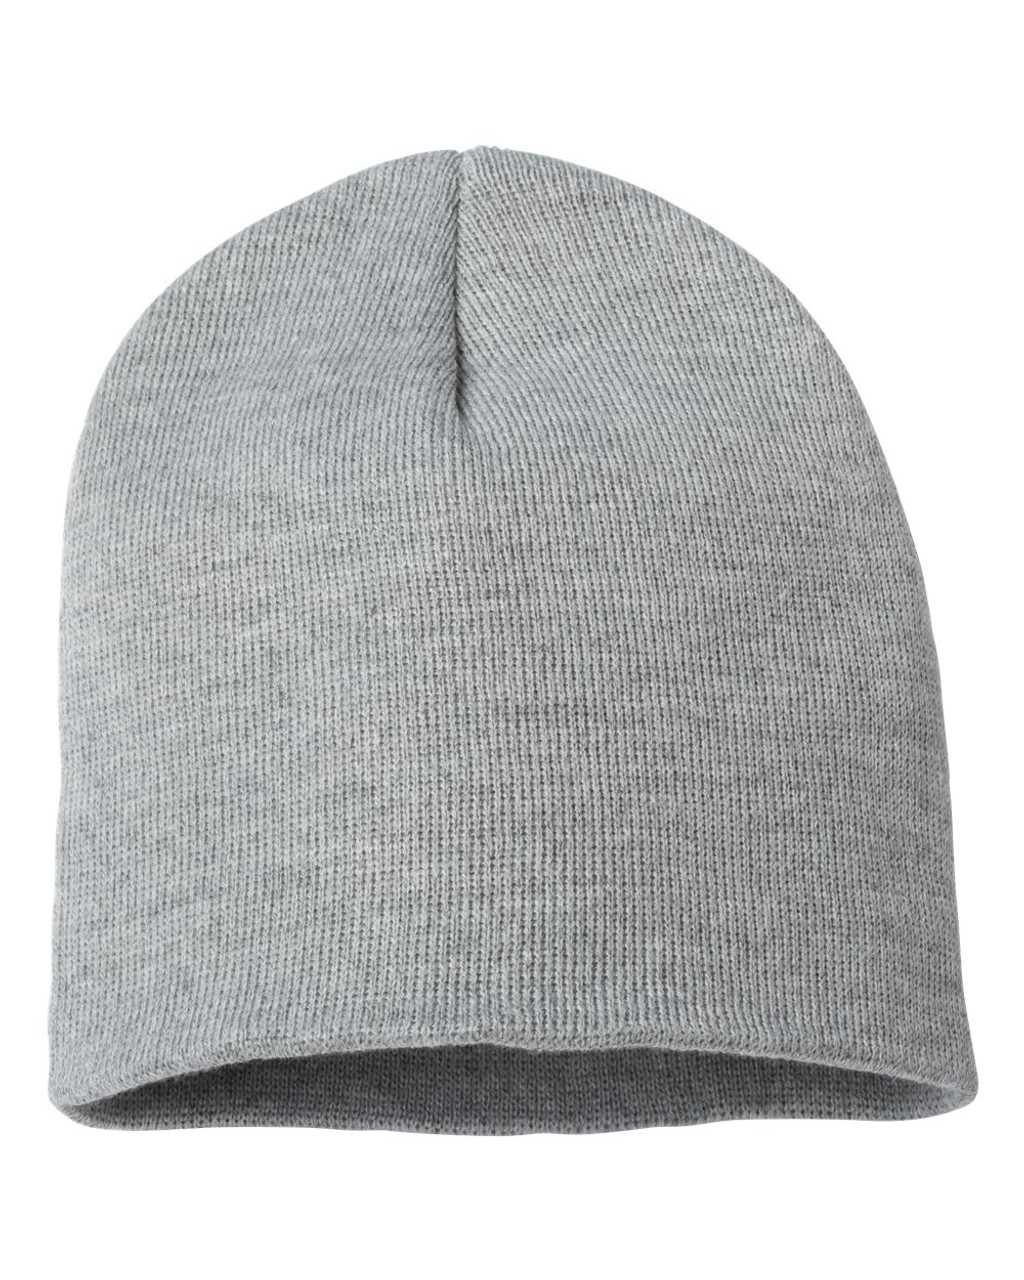 "Heather Grey - SP08 Sportsman Acrylic Knit 8"" Toque 